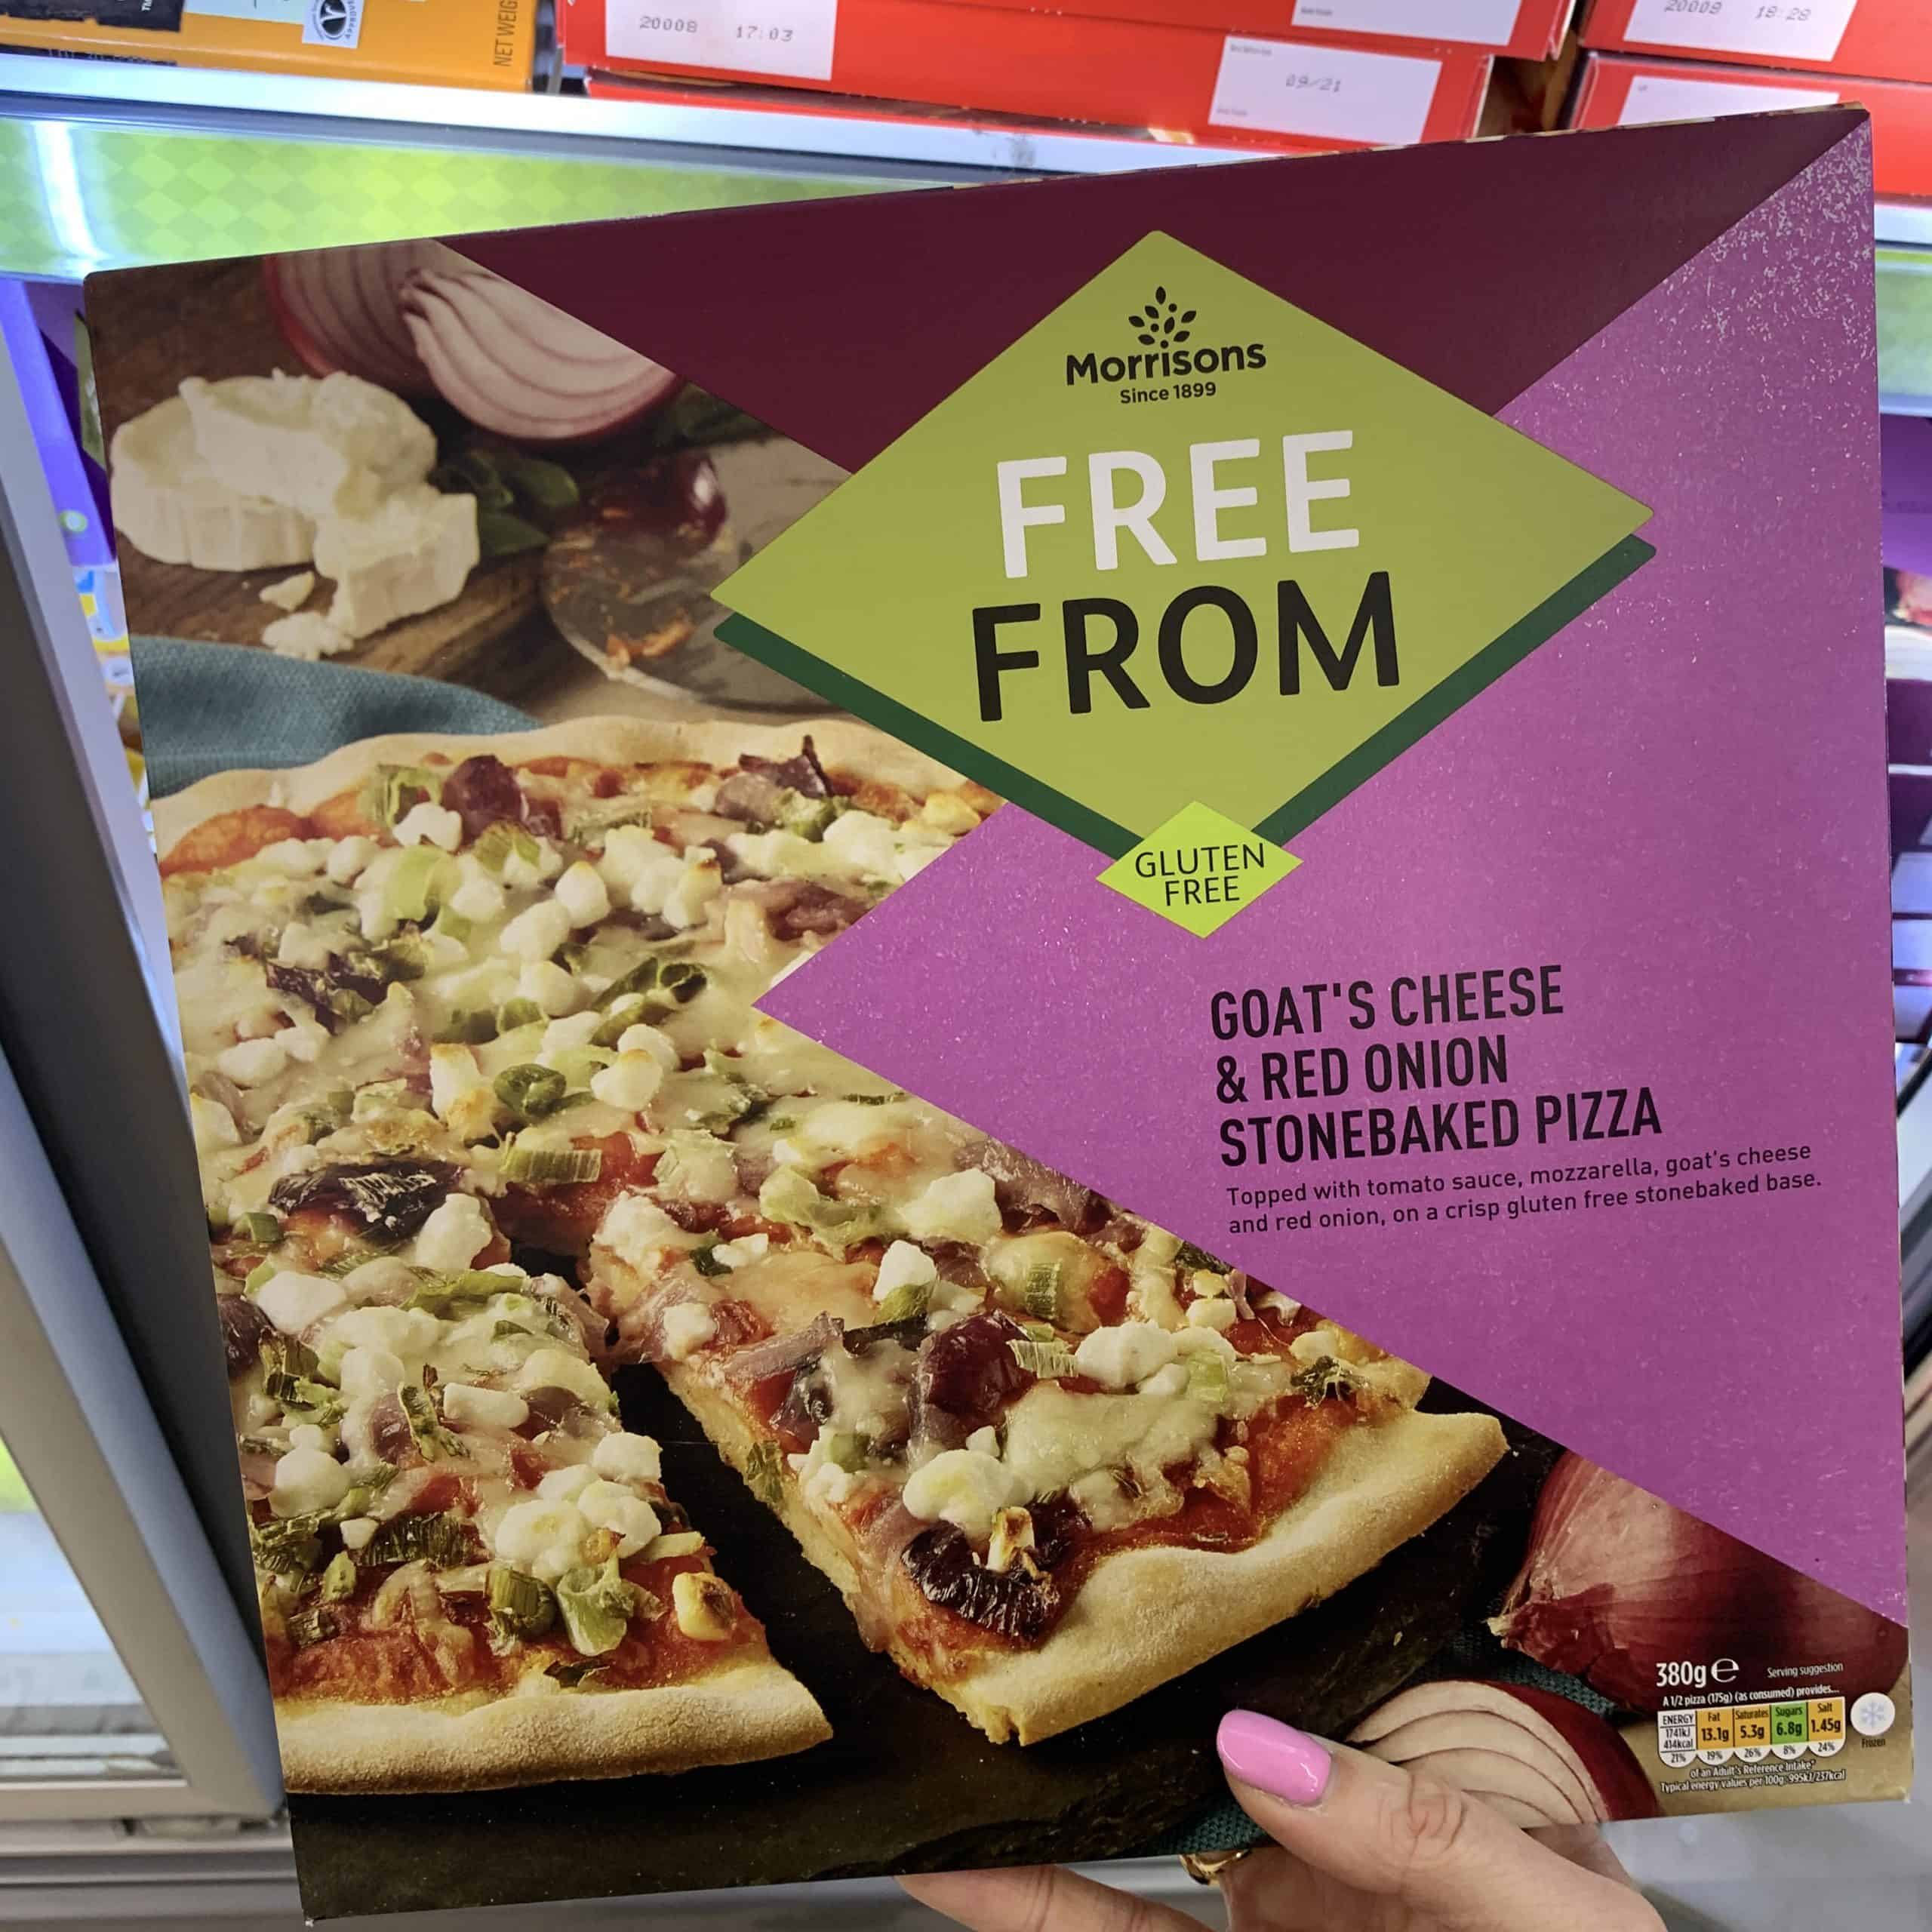 new gluten free products uk supermarkets 2020 11